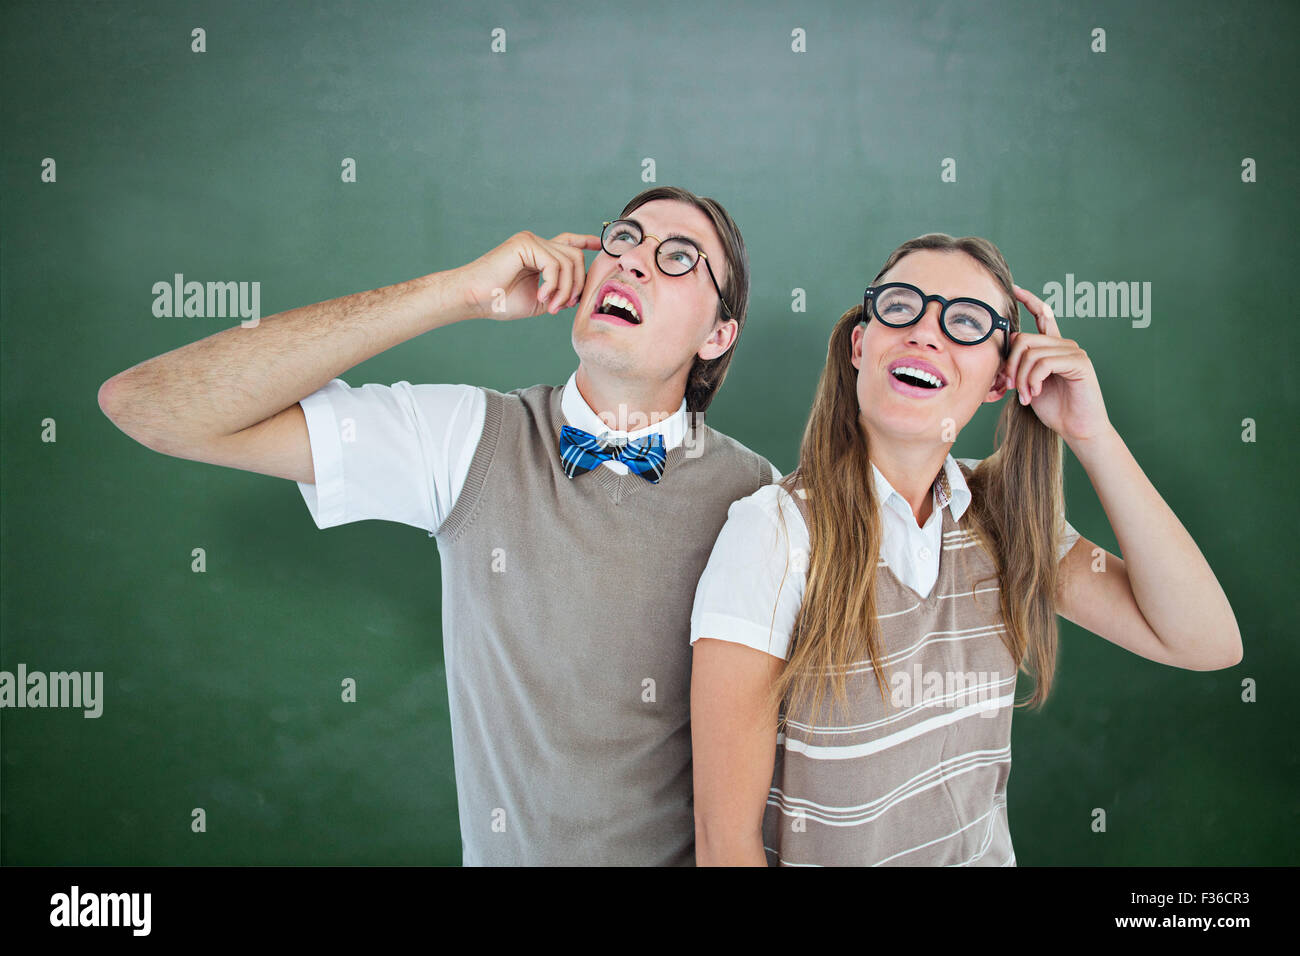 Composite image of geeky hipsters looking confused - Stock Image